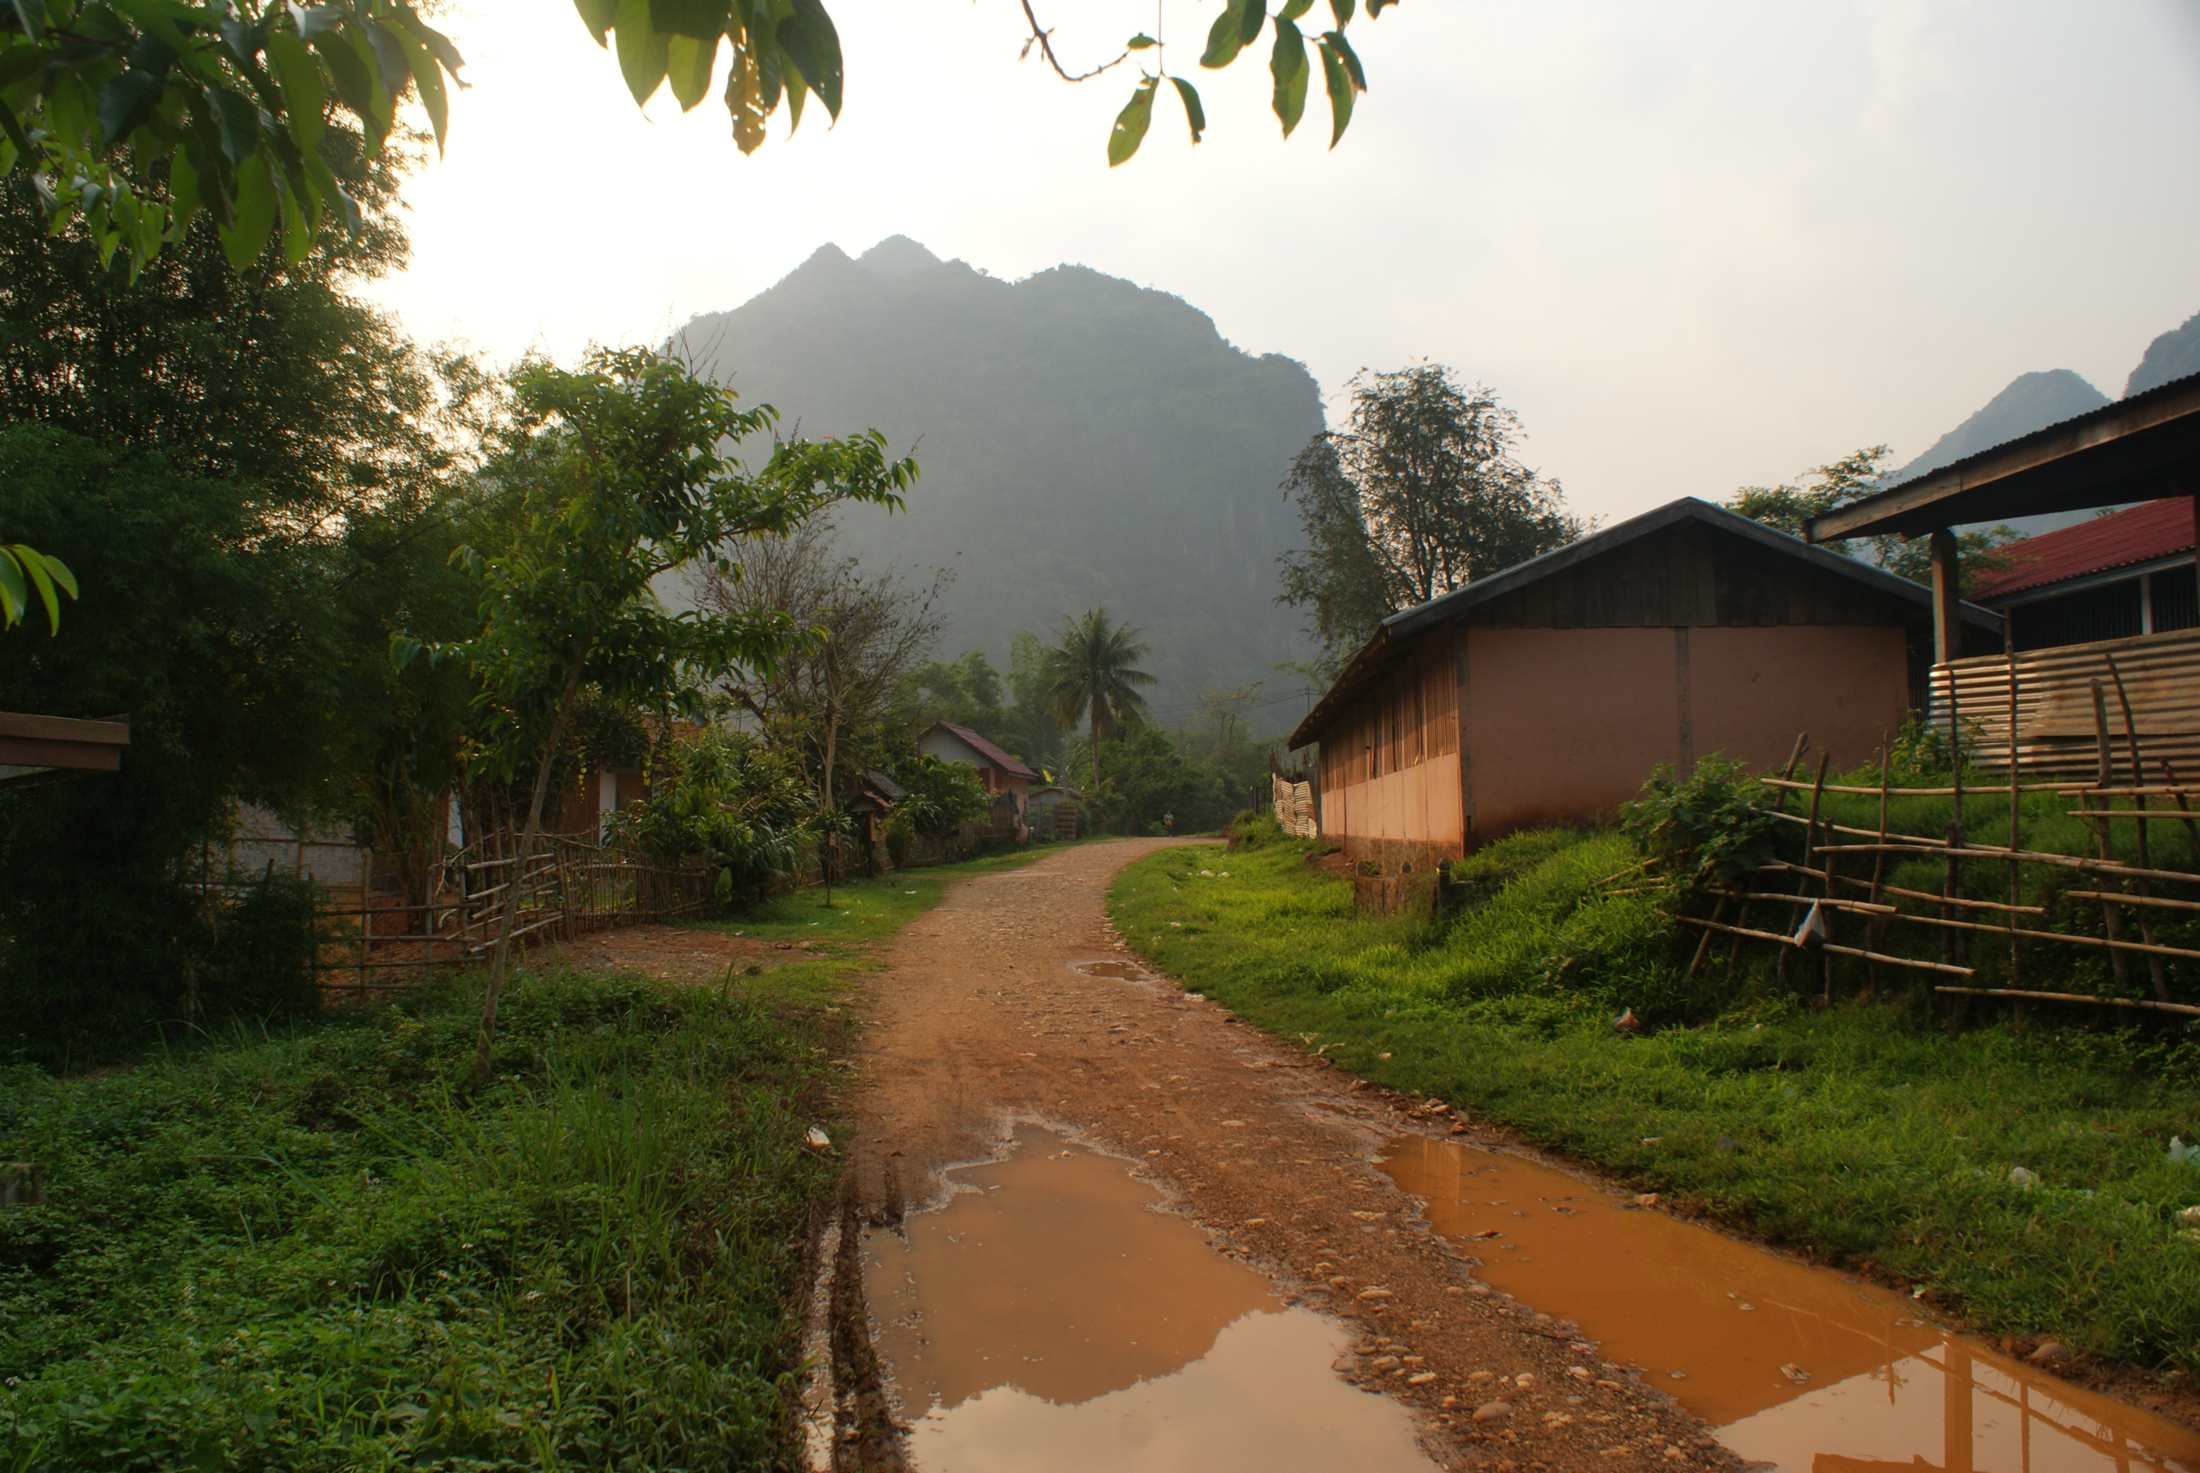 Walk through Nong Khiaw after the storm